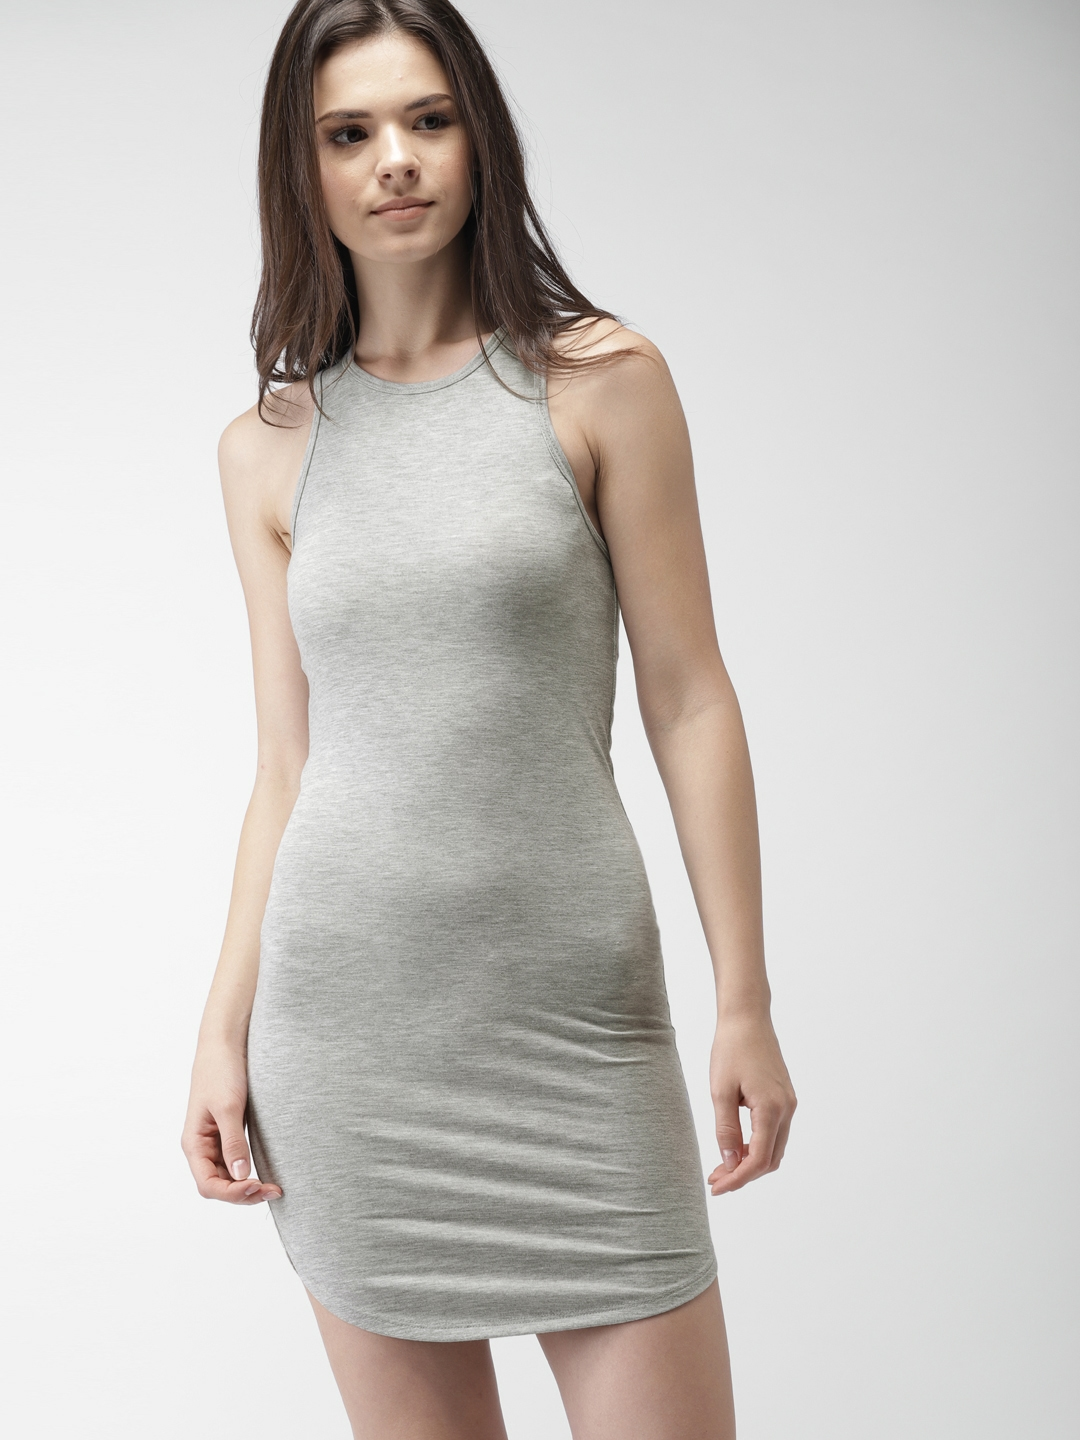 629845cee15 Buy FOREVER 21 Women Grey Solid Bodycon Dress - Dresses for Women ...